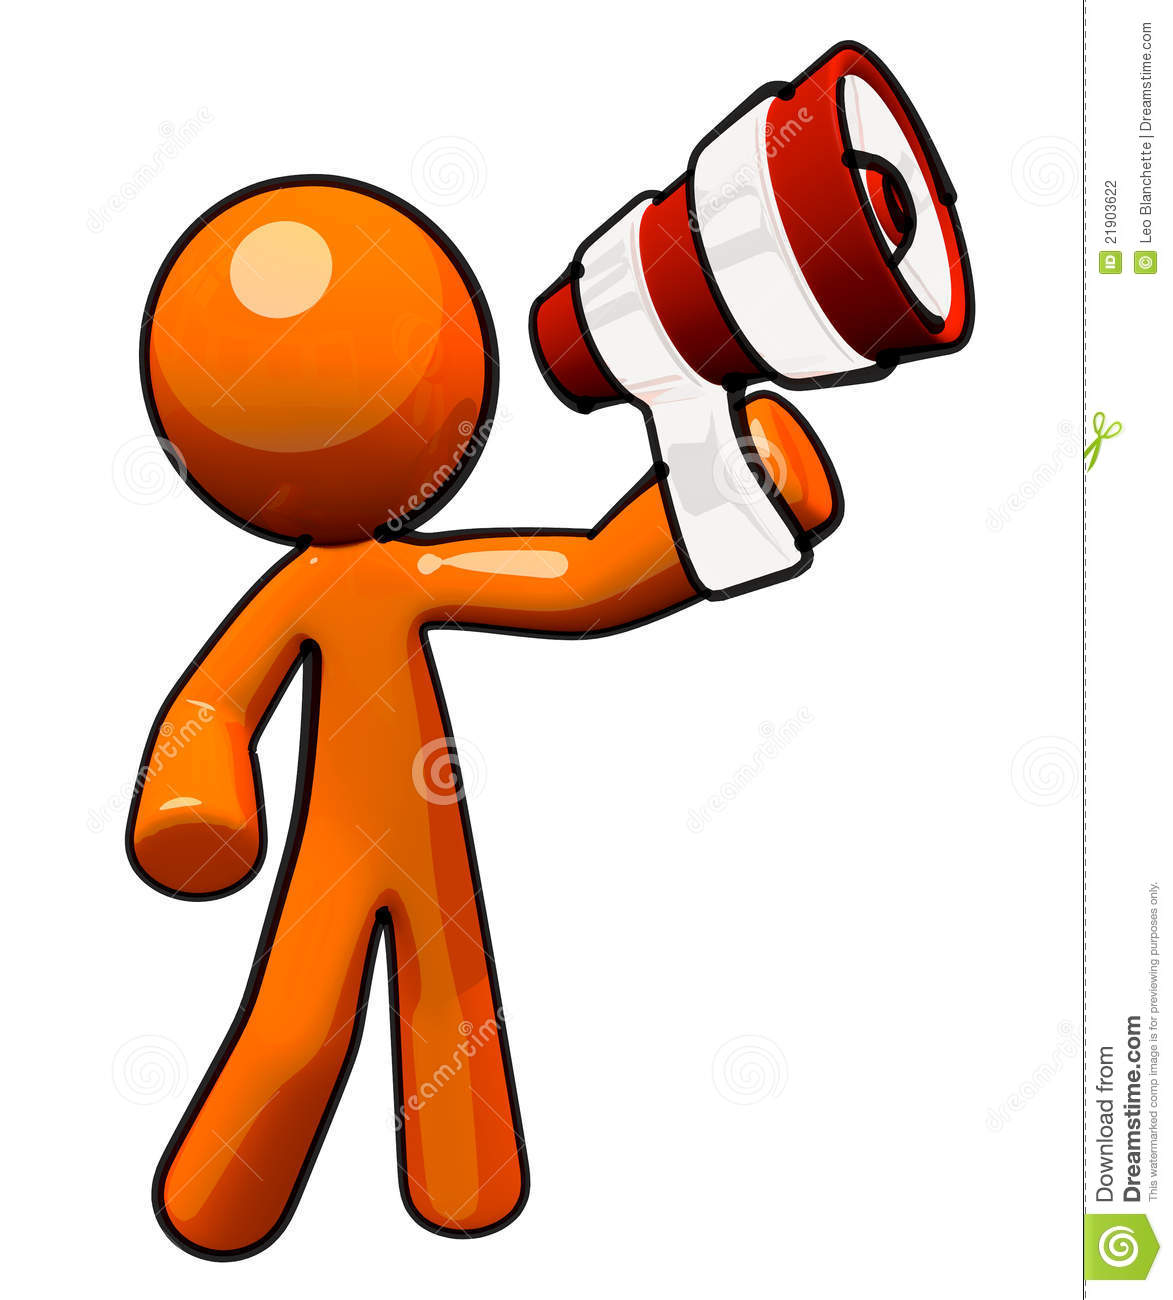 clipart man with megaphone - photo #32